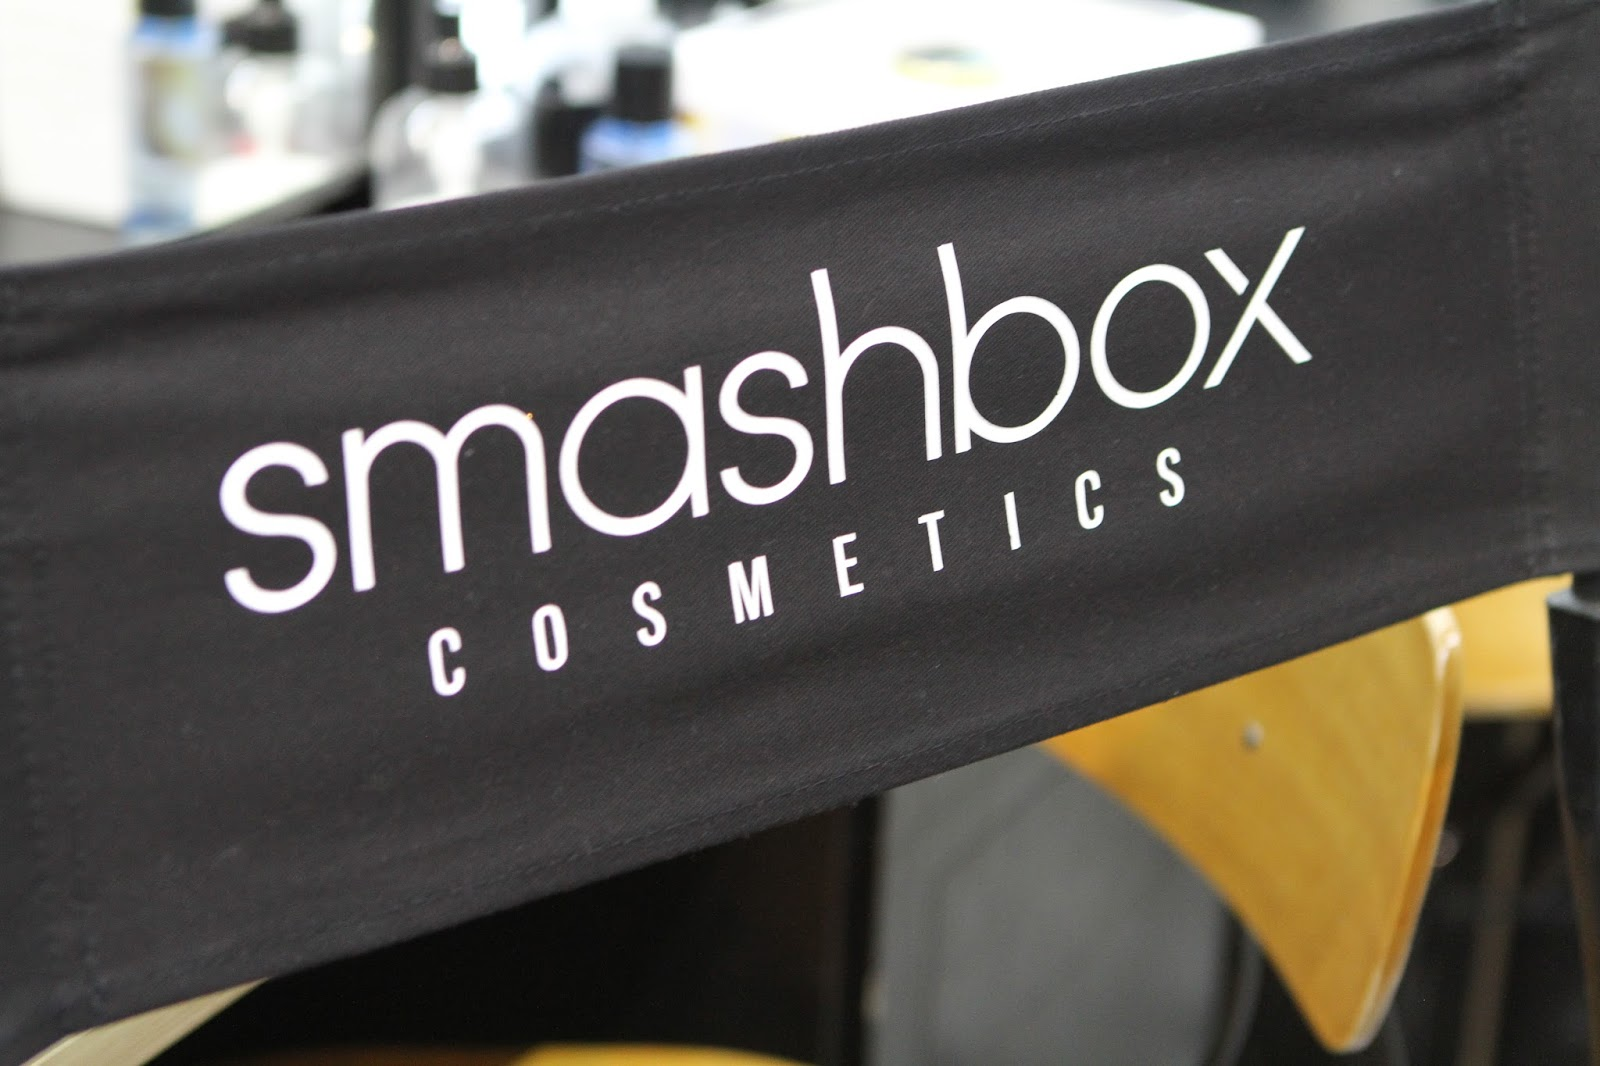 Smashbox London